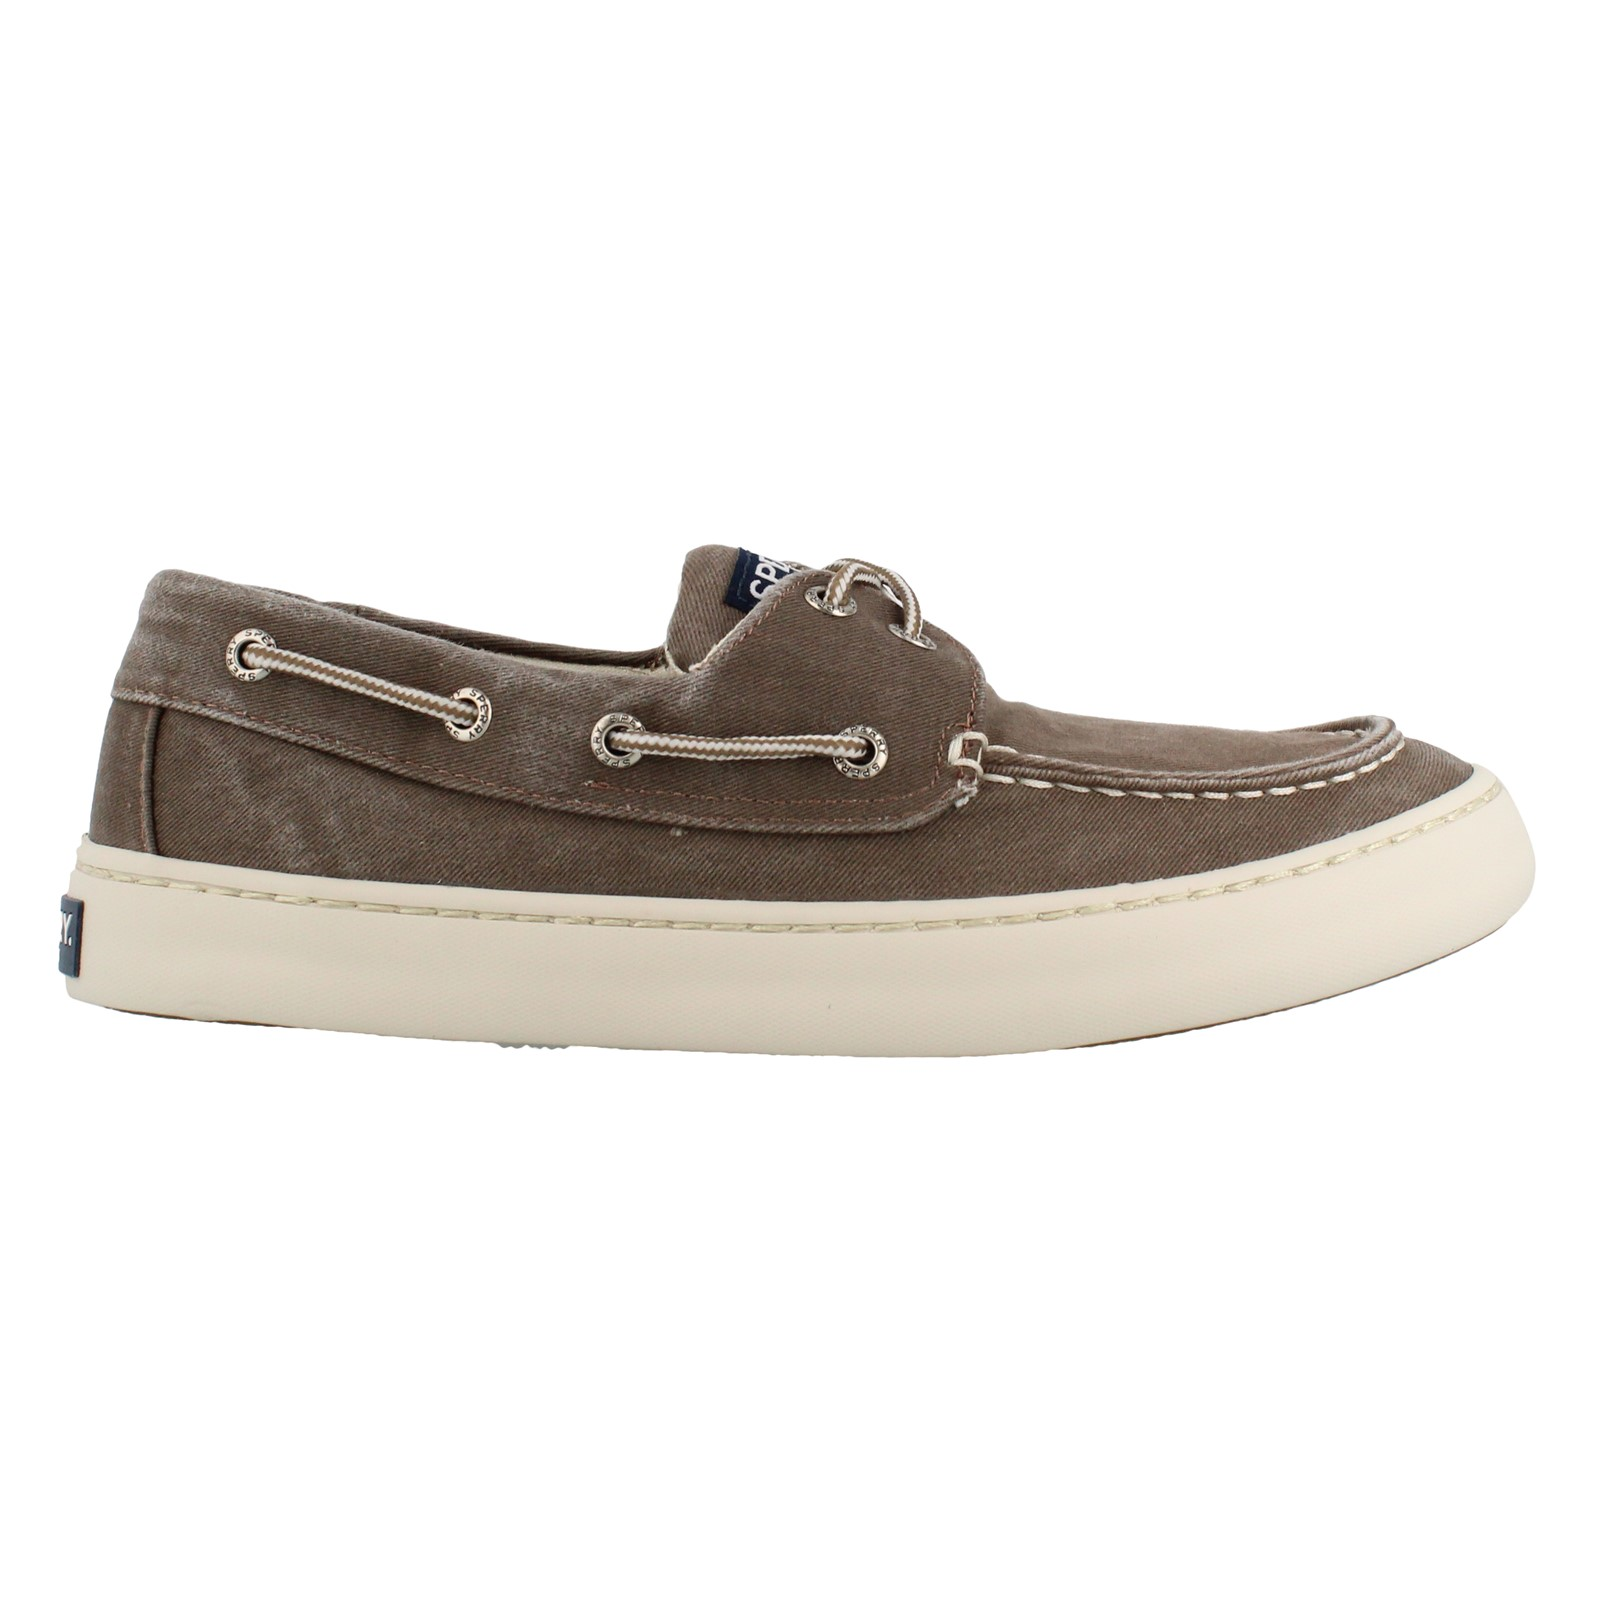 Men's Sperry, Cutter 2 Eye Lace up Boat Shoes